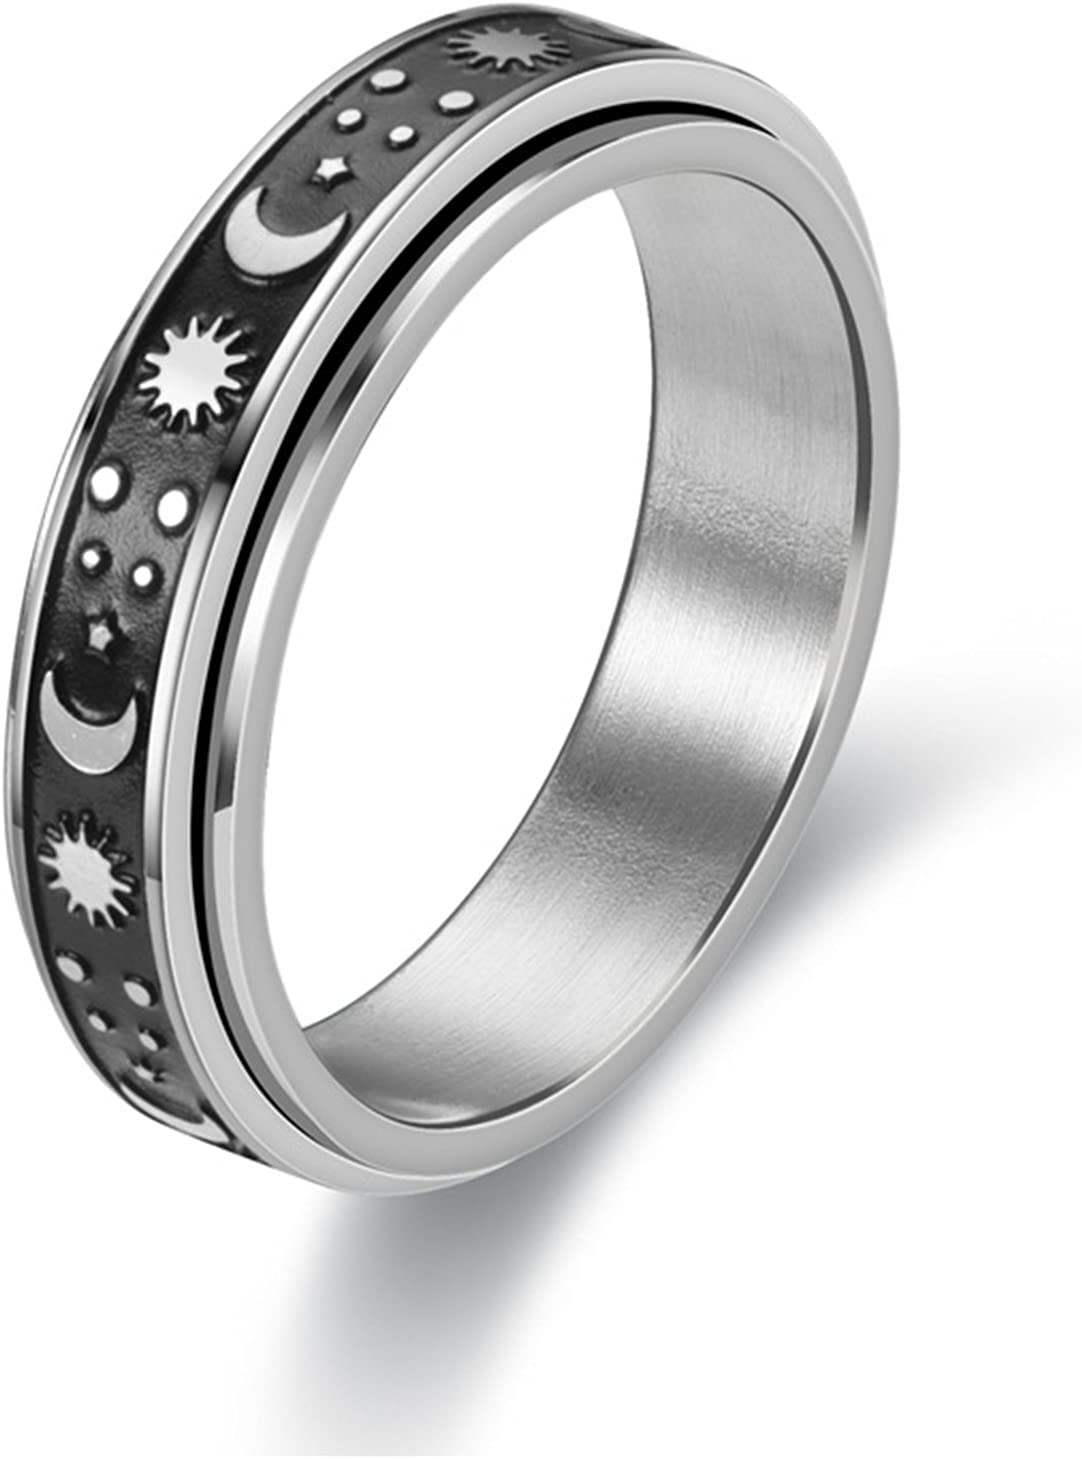 ZHAOQI Titanium Steel Spinner Rings, Moon and Star Fidget Ring, Stress Relieving Anxiety Ring, Engagement Wedding Promise Band for Women Men Size 6-11